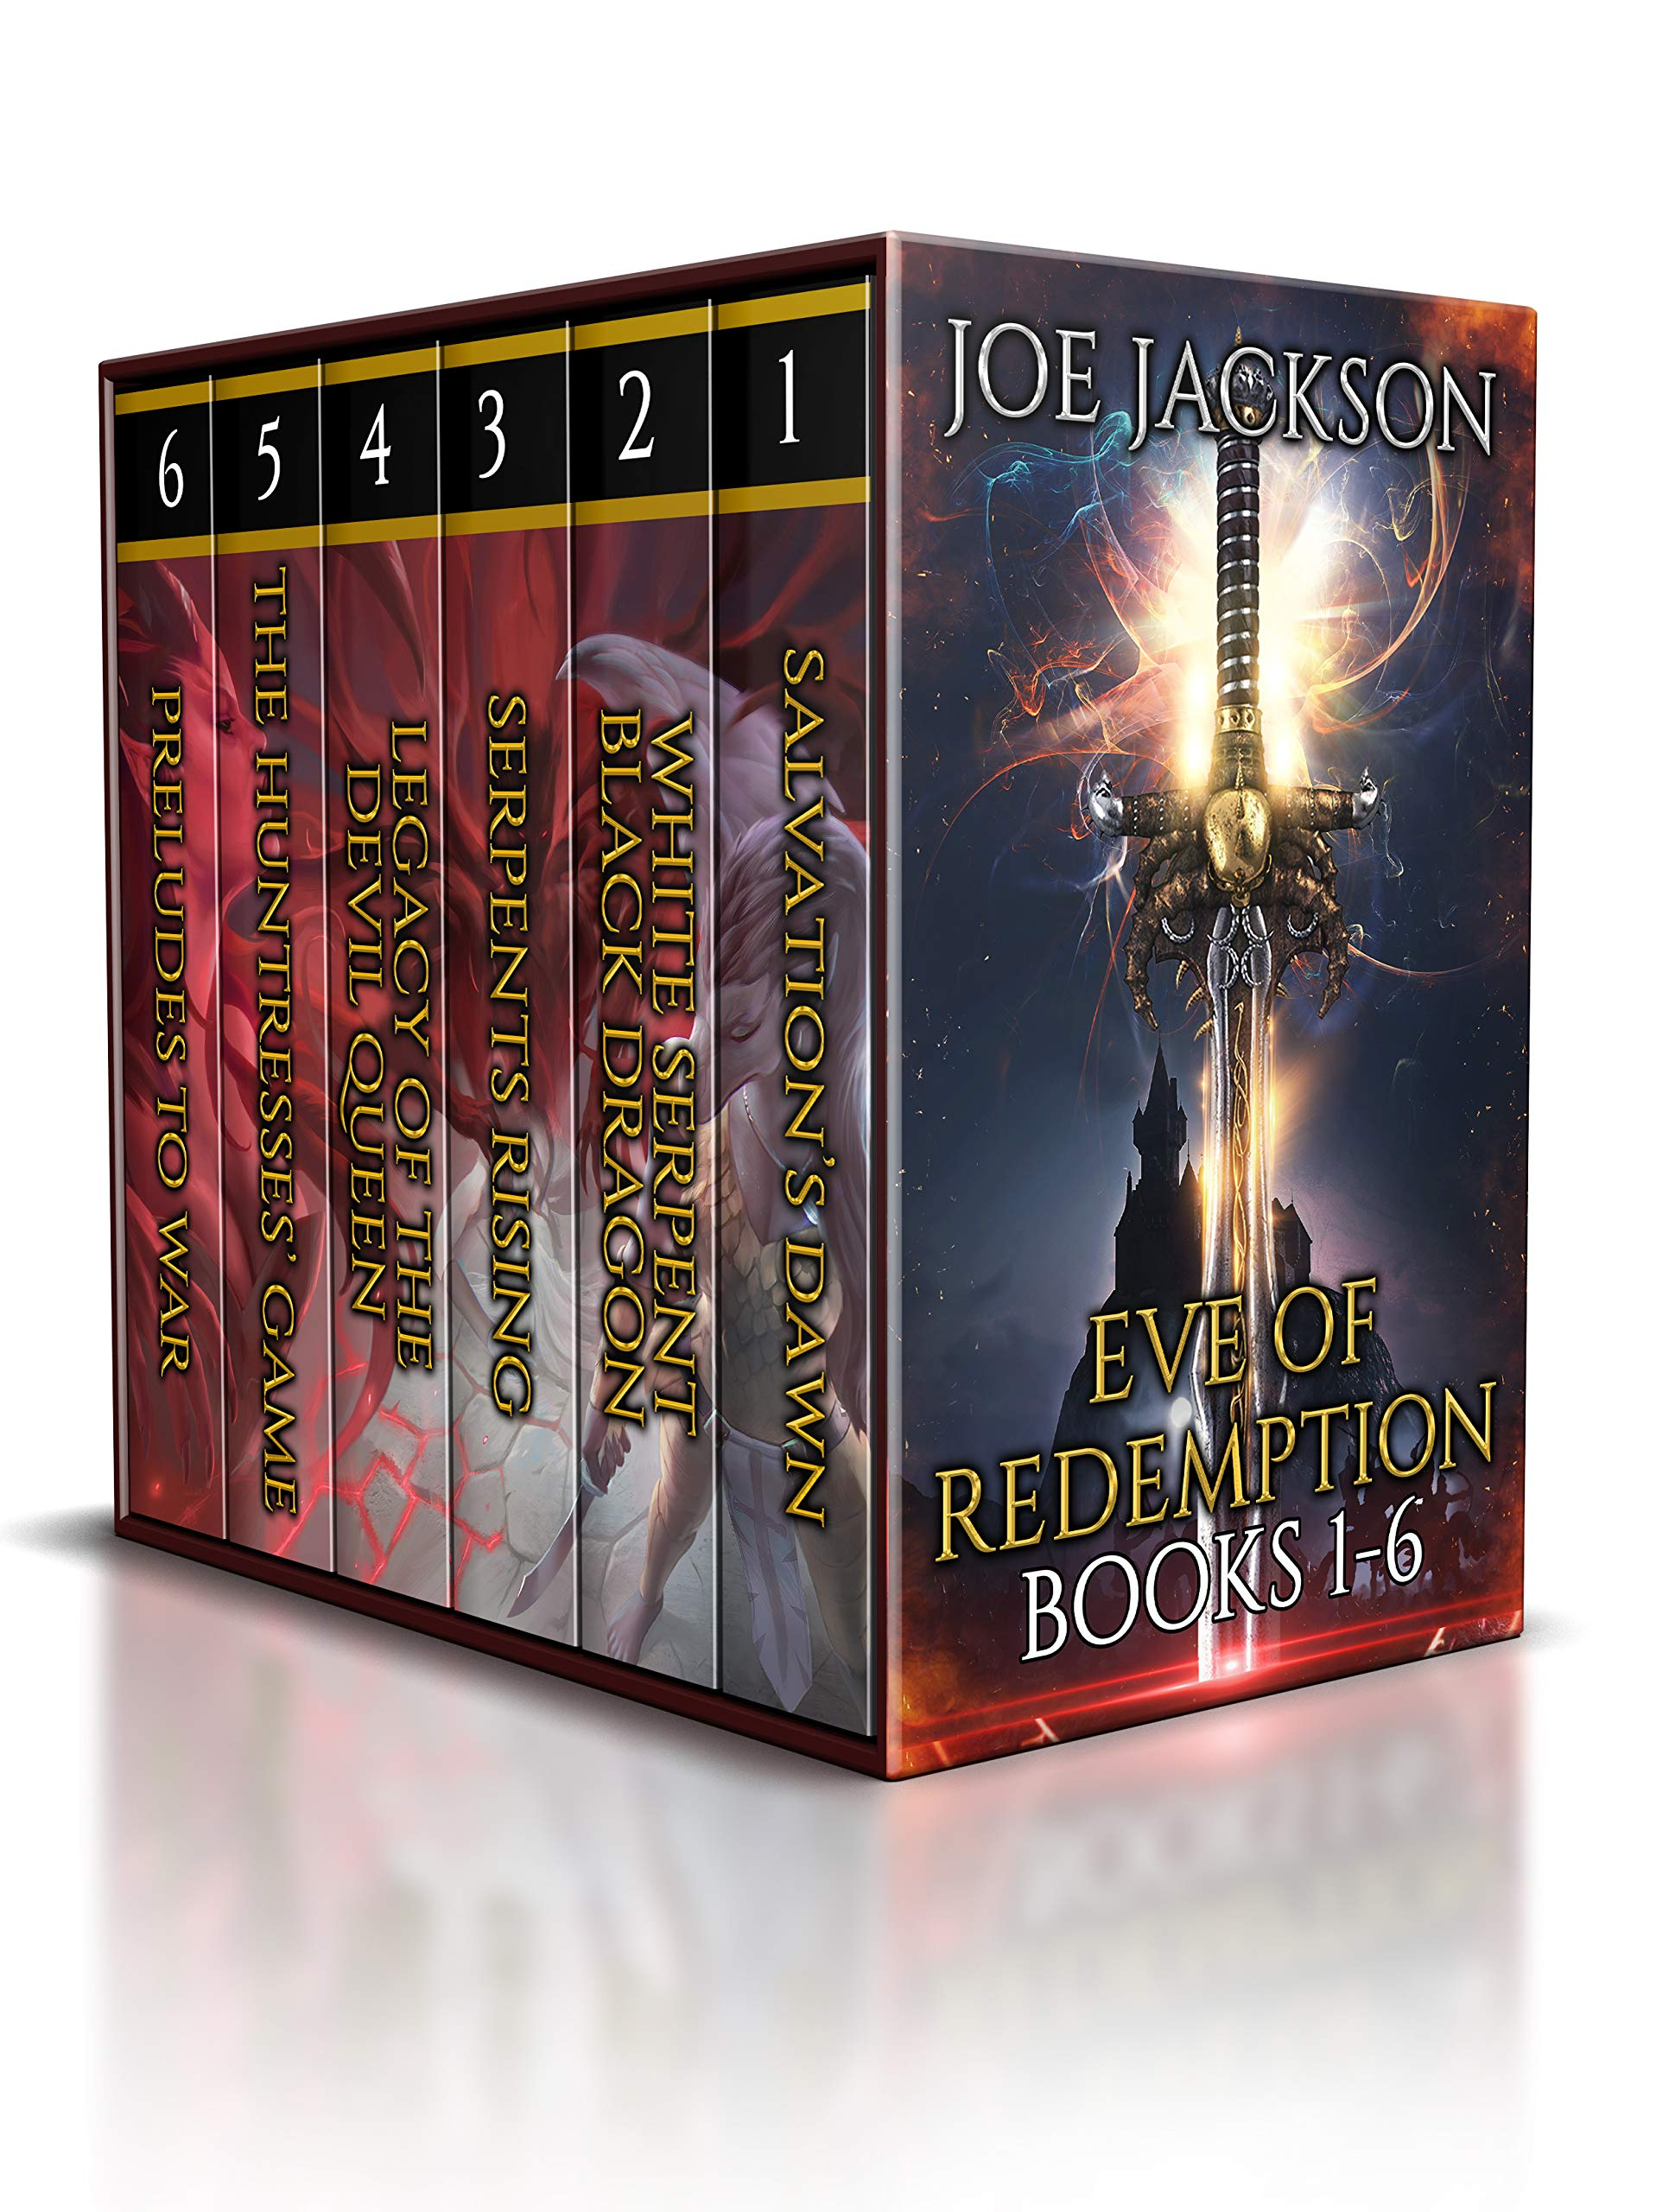 Eve of Redemption: Books 1-6: (An Epic Fantasy Boxed Set) (Eve of Redemption Box Sets Book 1)